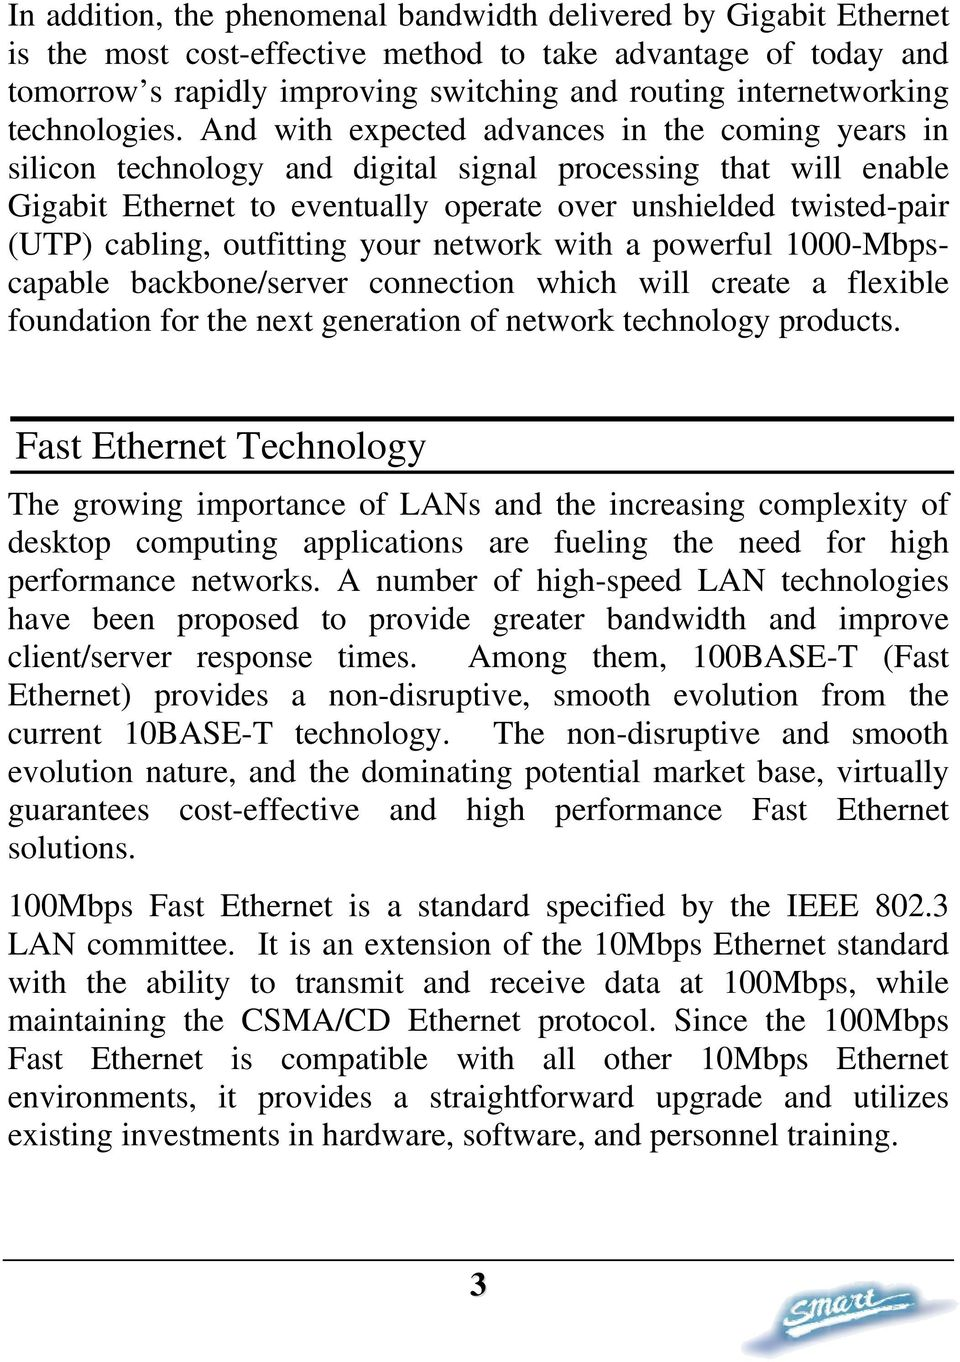 And with expected advances in the coming years in silicon technology and digital signal processing that will enable Gigabit Ethernet to eventually operate over unshielded twisted-pair (UTP) cabling,